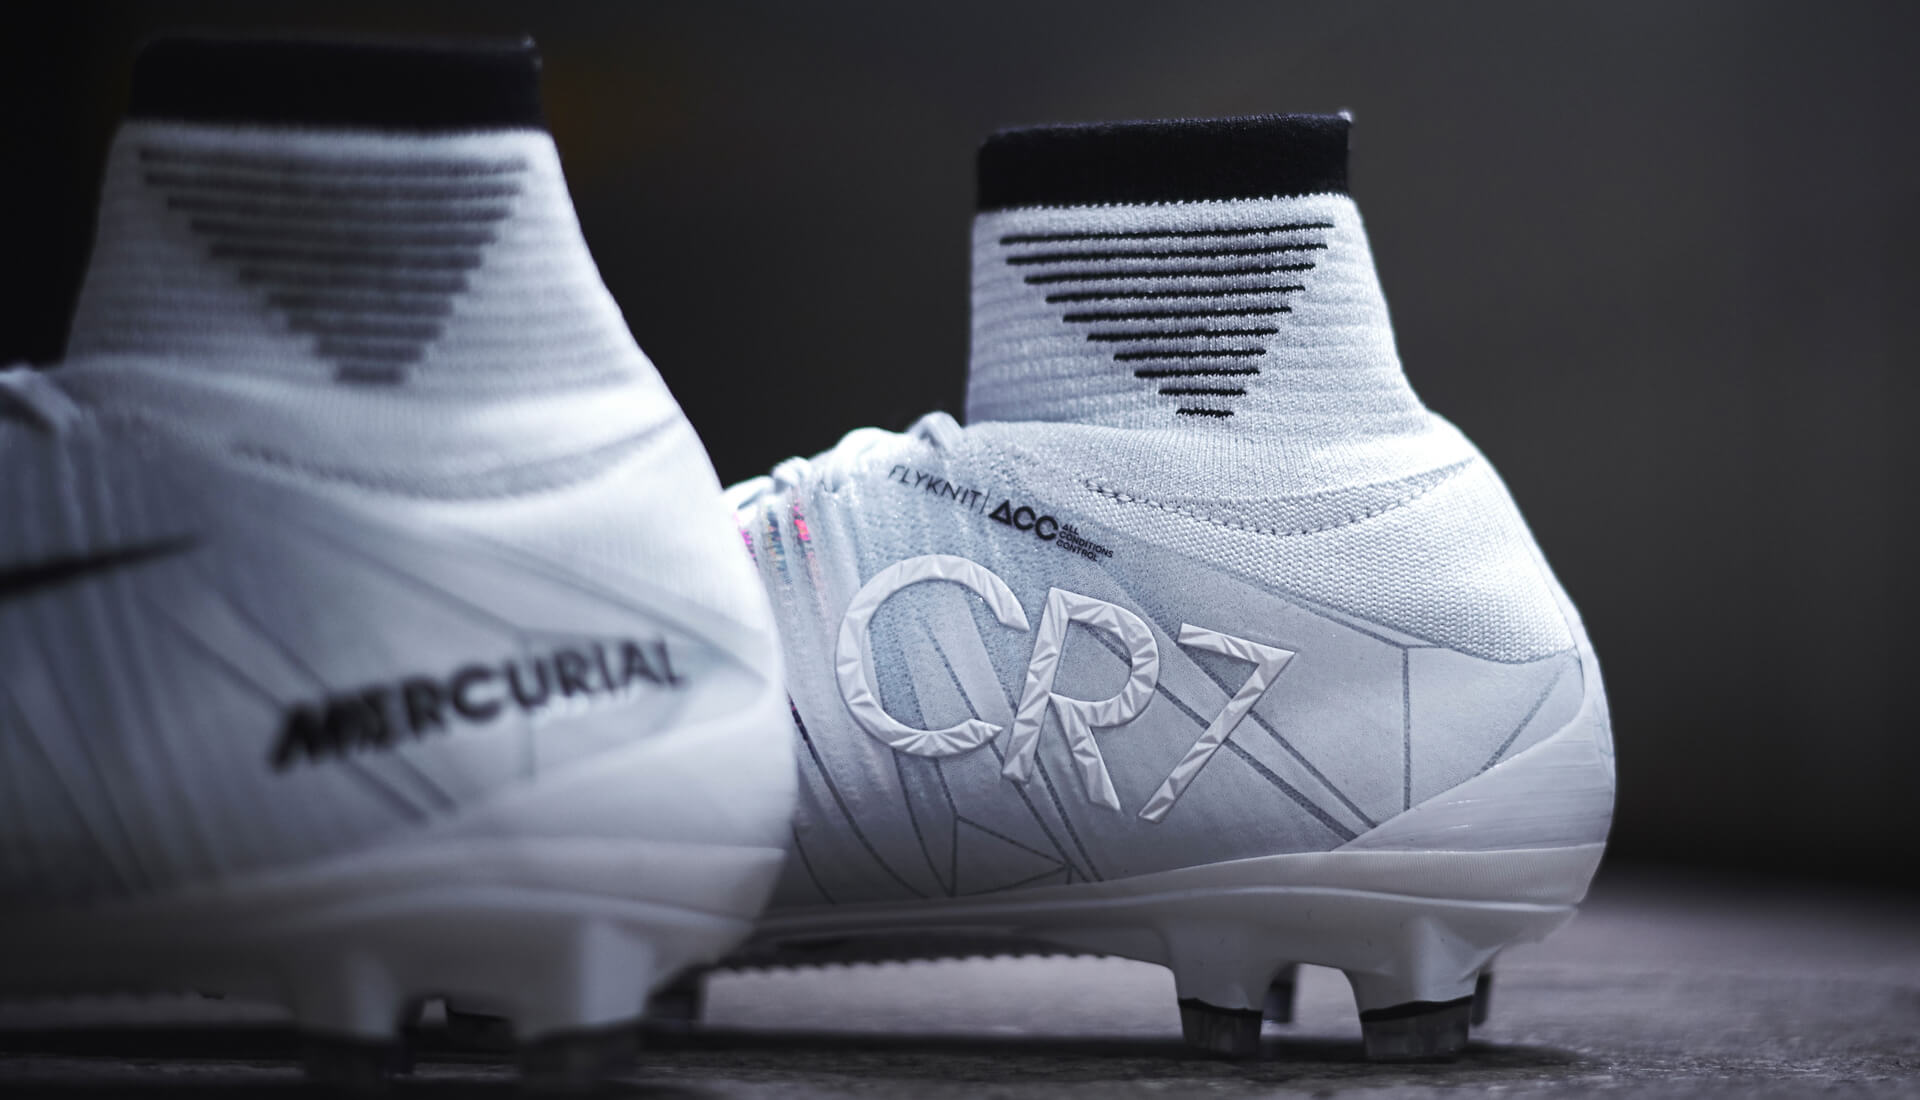 aca5286f7c A Retrospective Look at the CR7 Mercurial Chapter Series - SoccerBible